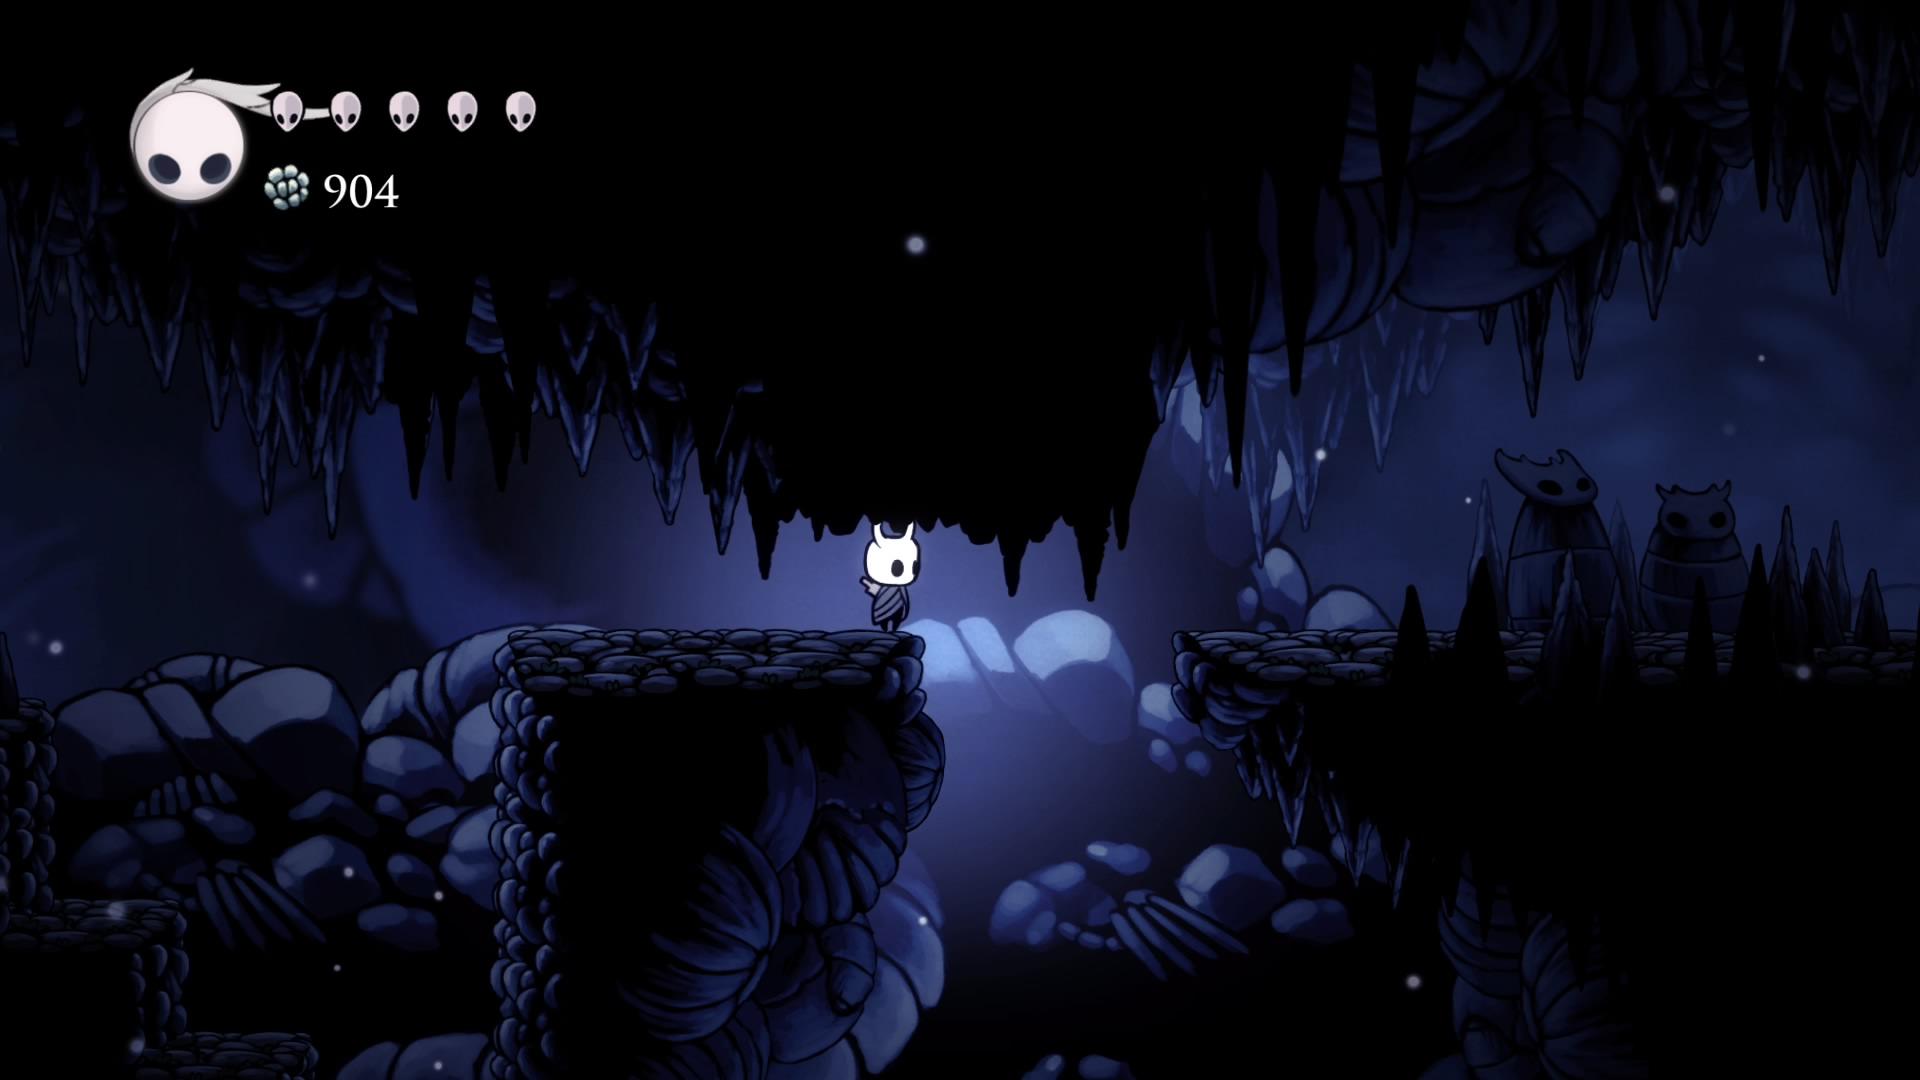 Hollow Knight 20191009161412 - Hollow Knight, guida e lore: Verdevia II